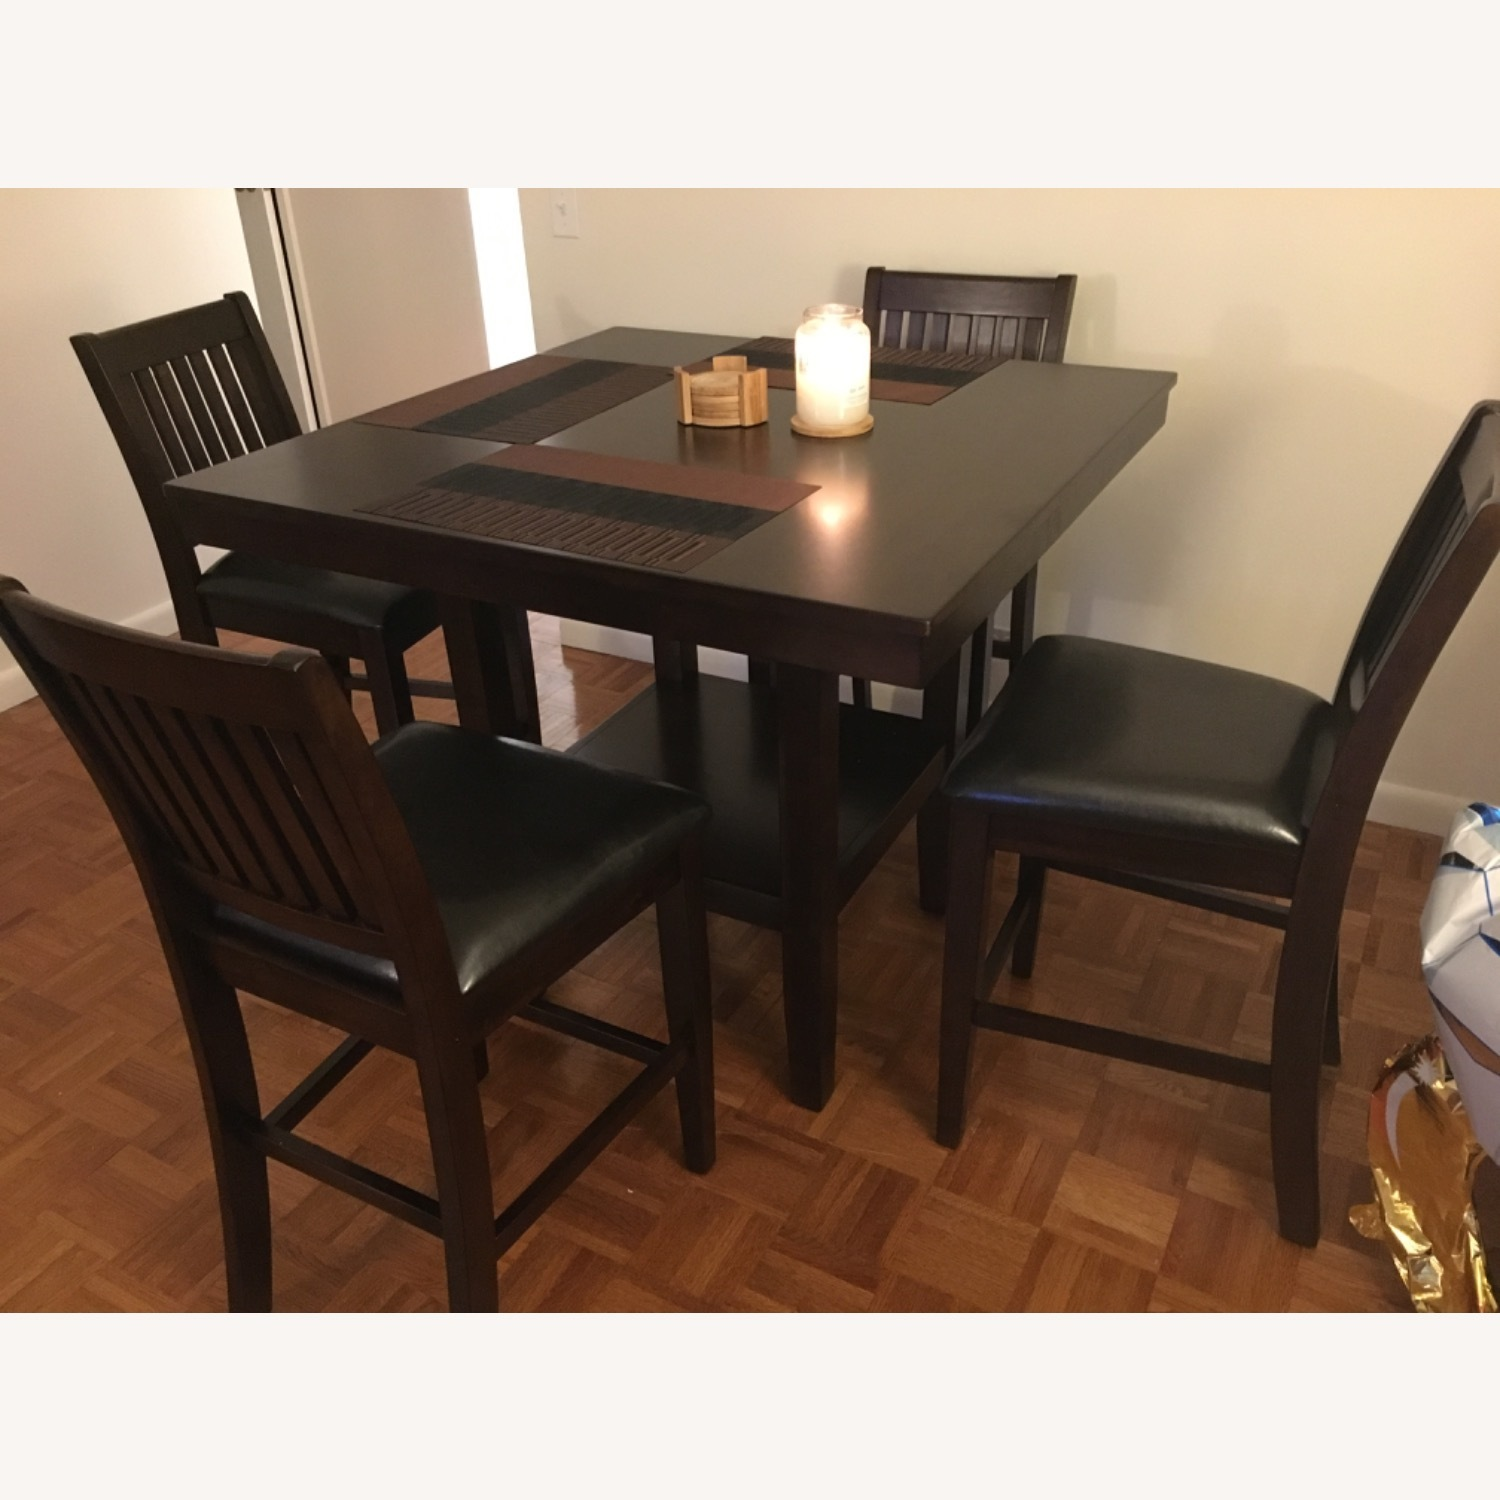 Wayfair 5 Piece Warm Cherry Dining Set - image-1